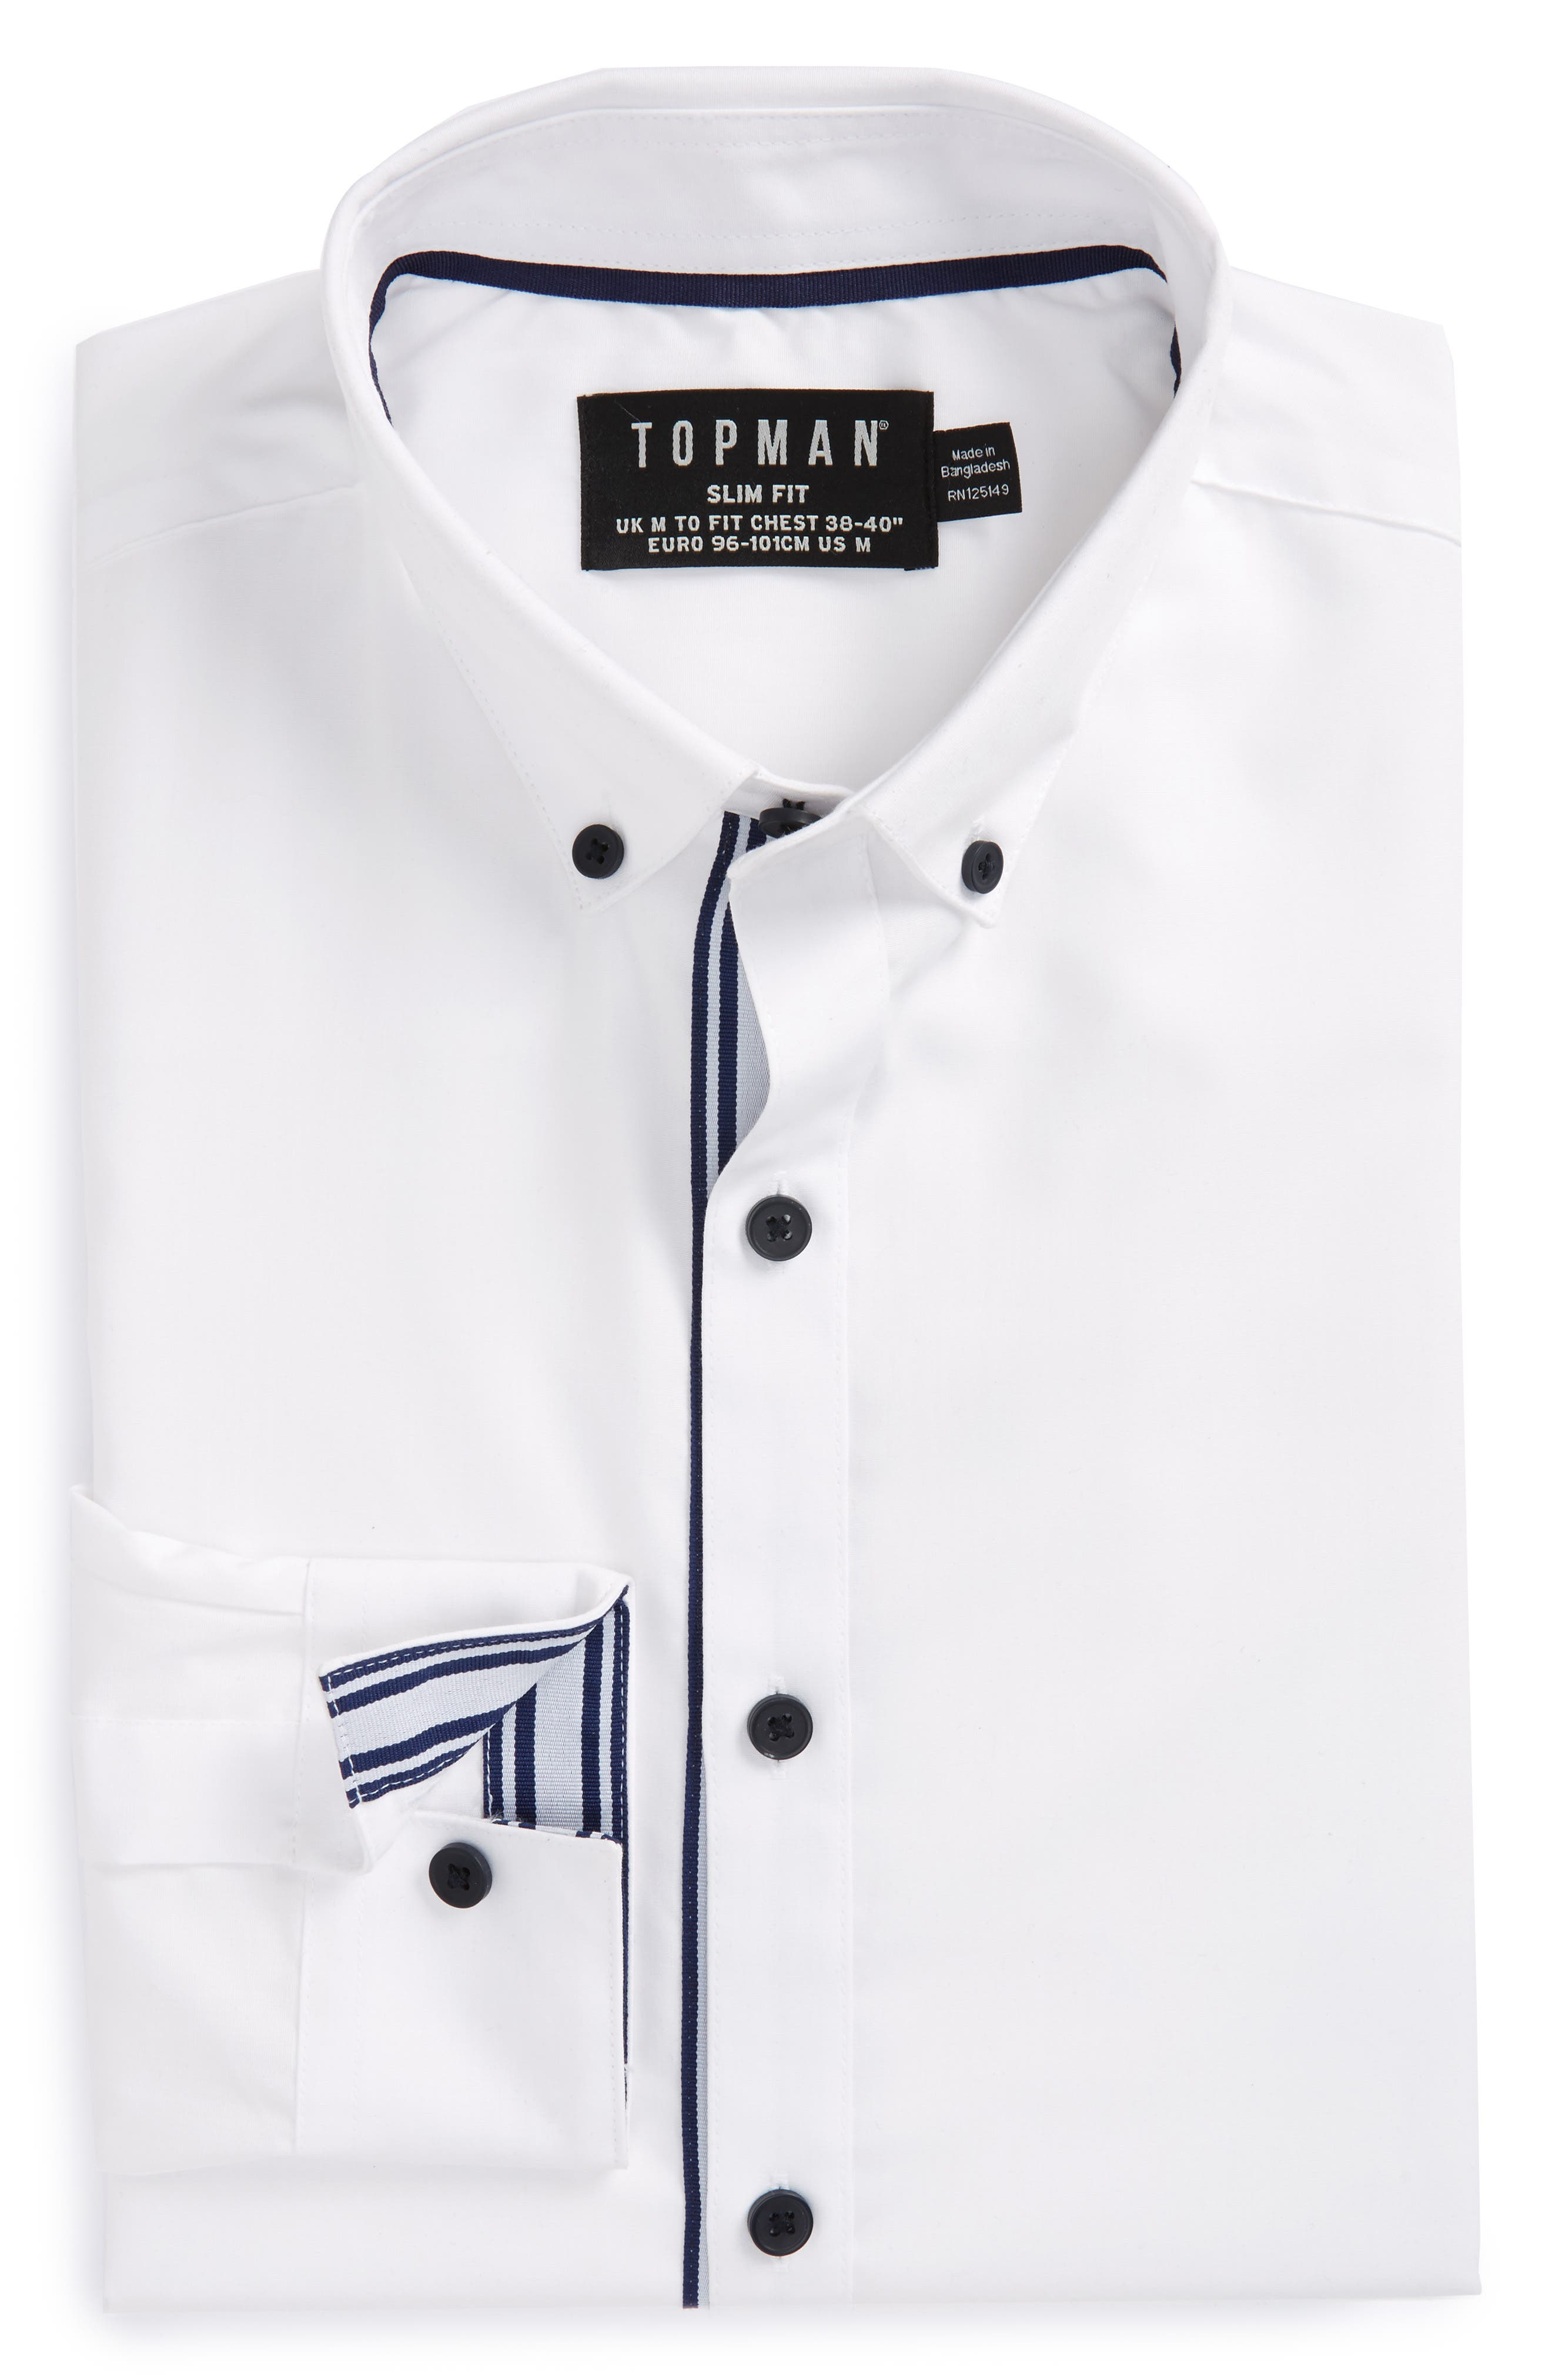 Topman Slim Fit Taped Shirt